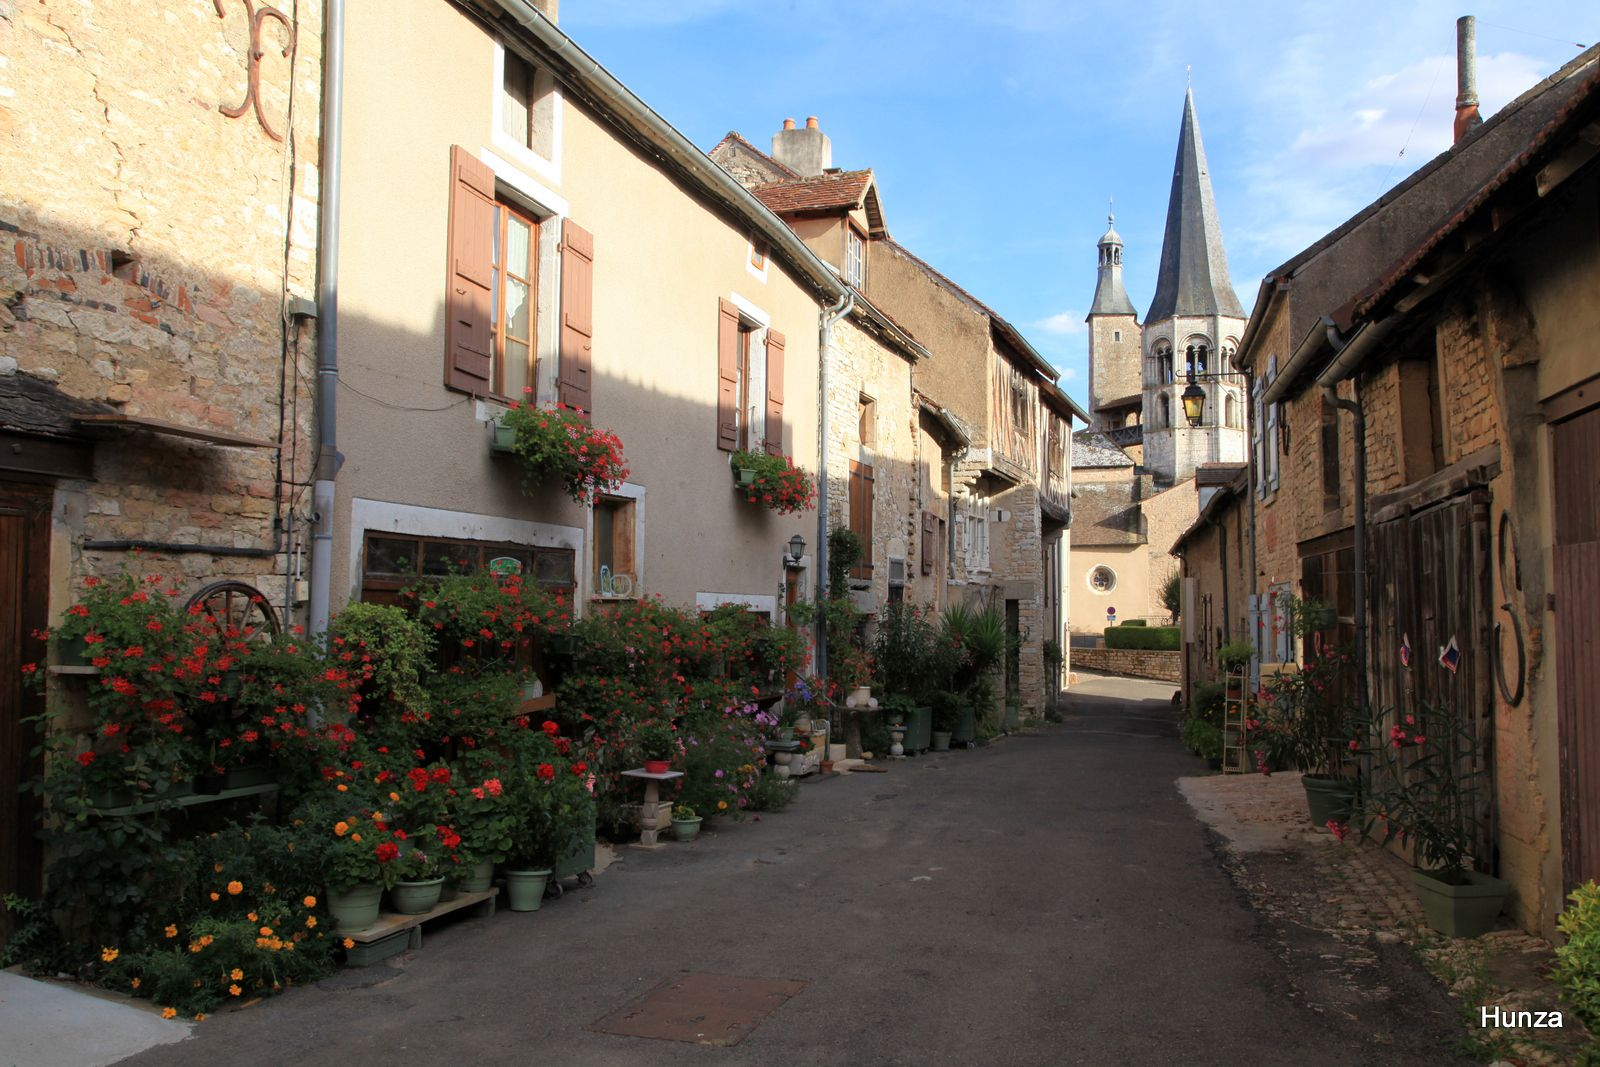 Saint-Gengoux le National : rue du Moulin à Cheval